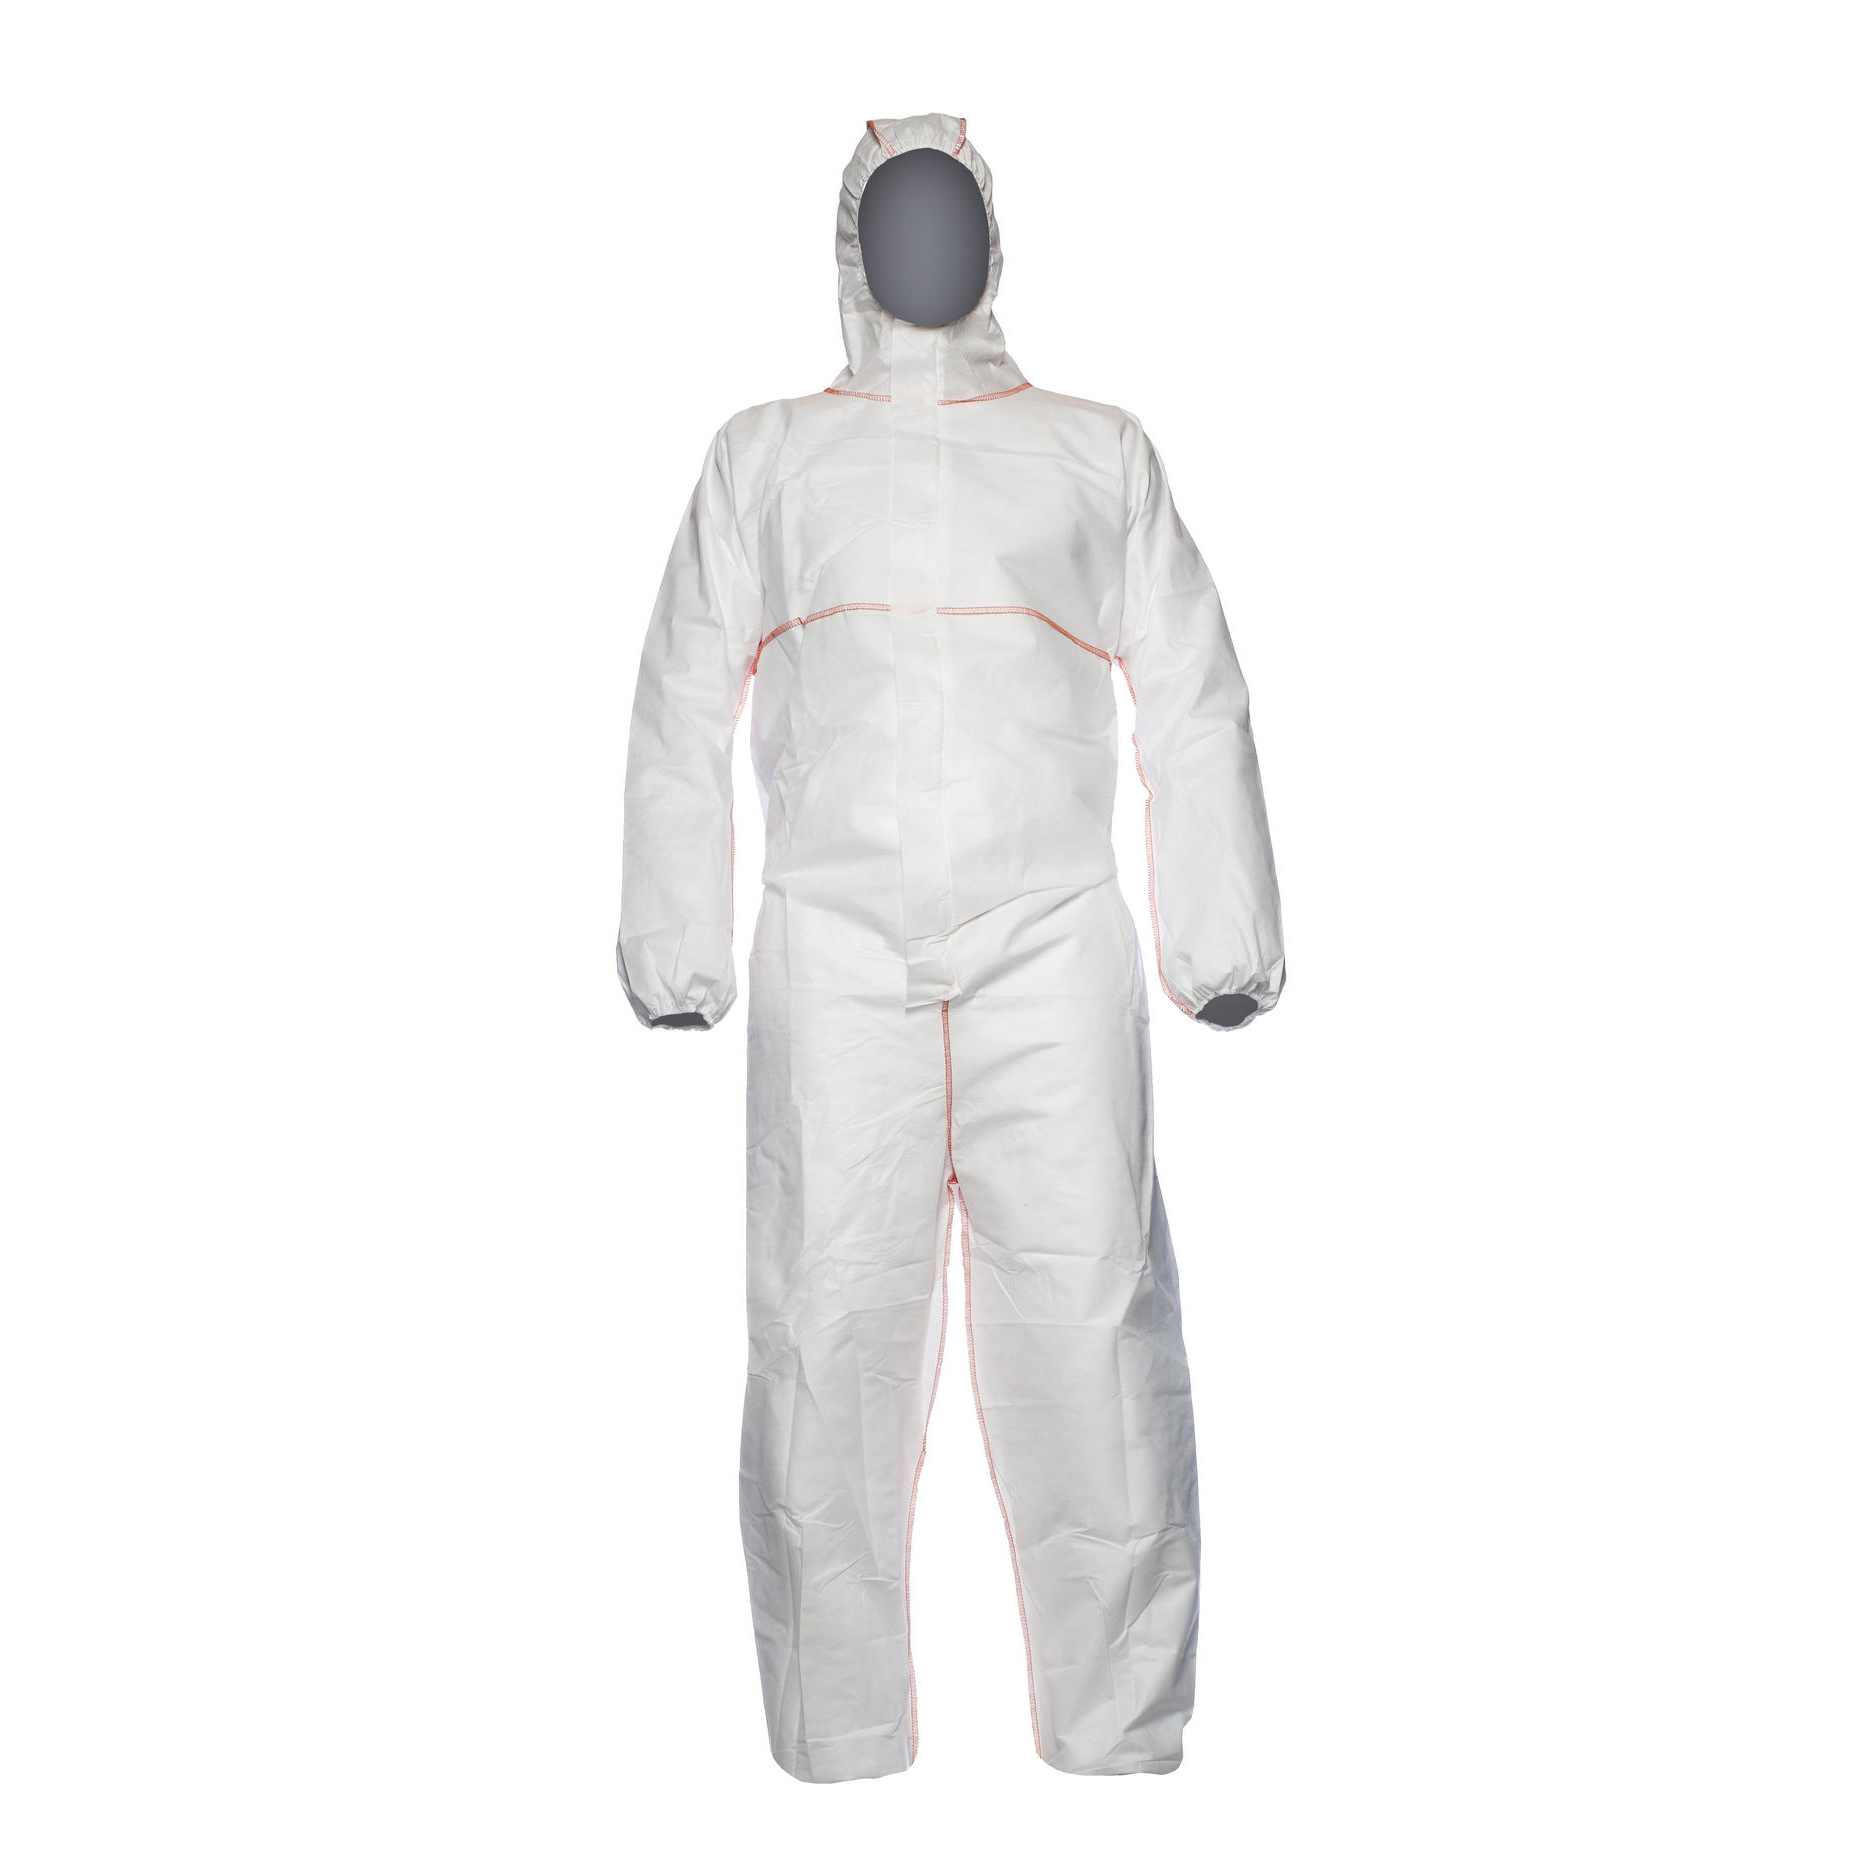 Protective coveralls Proshield Fire Resistant Coveralls White M Ref PROFRM *Up to 3 Day Leadtime*